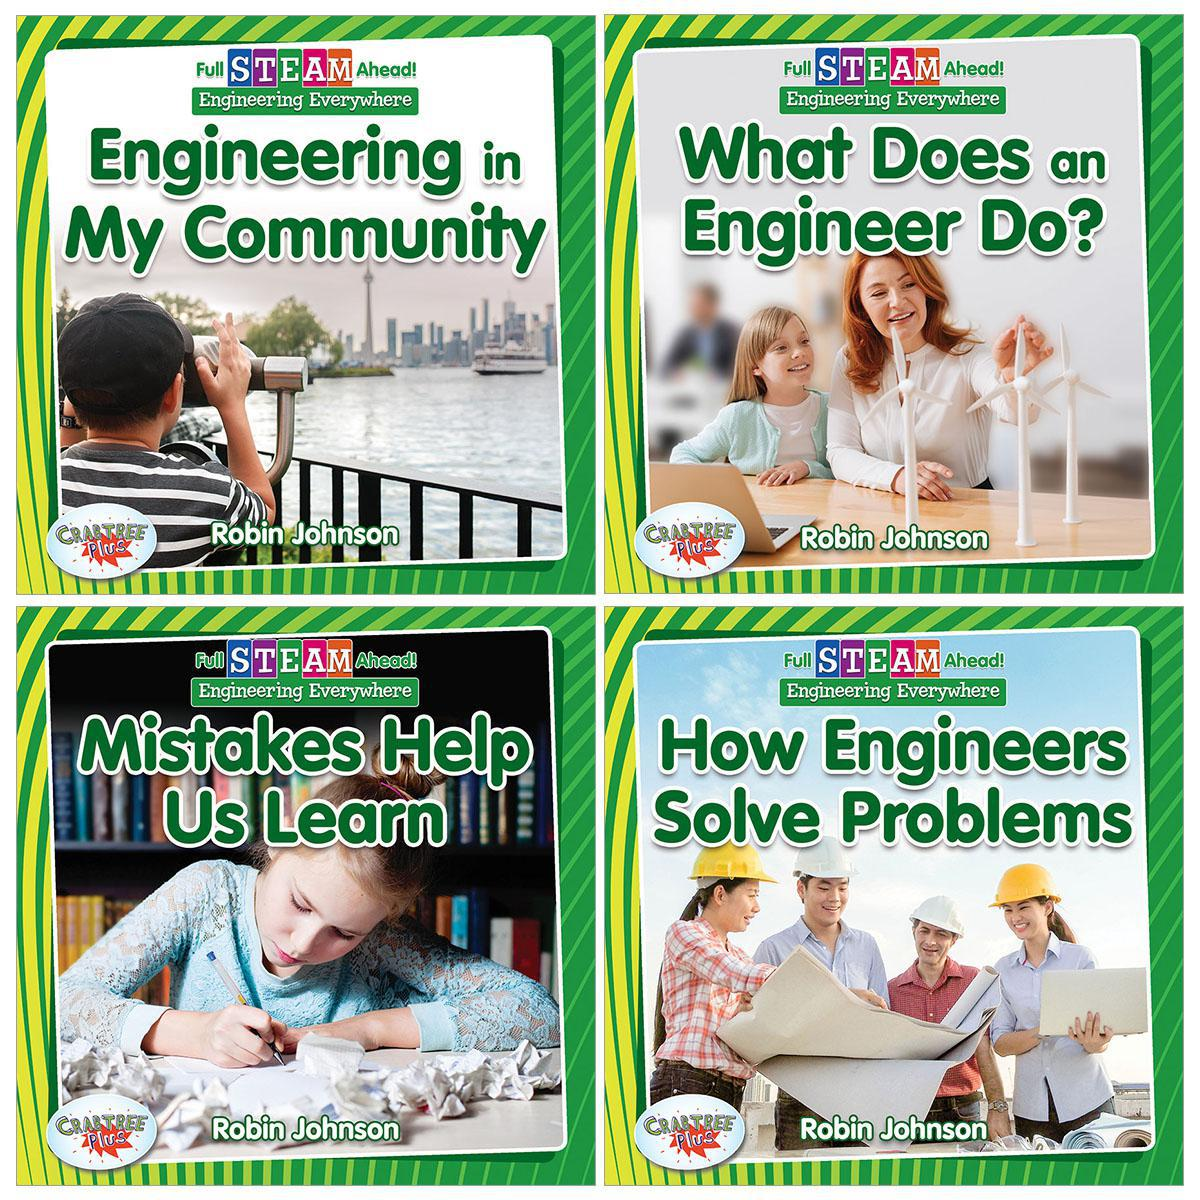 Full STEAM Ahead: Engineering Everywhere 4-Pack